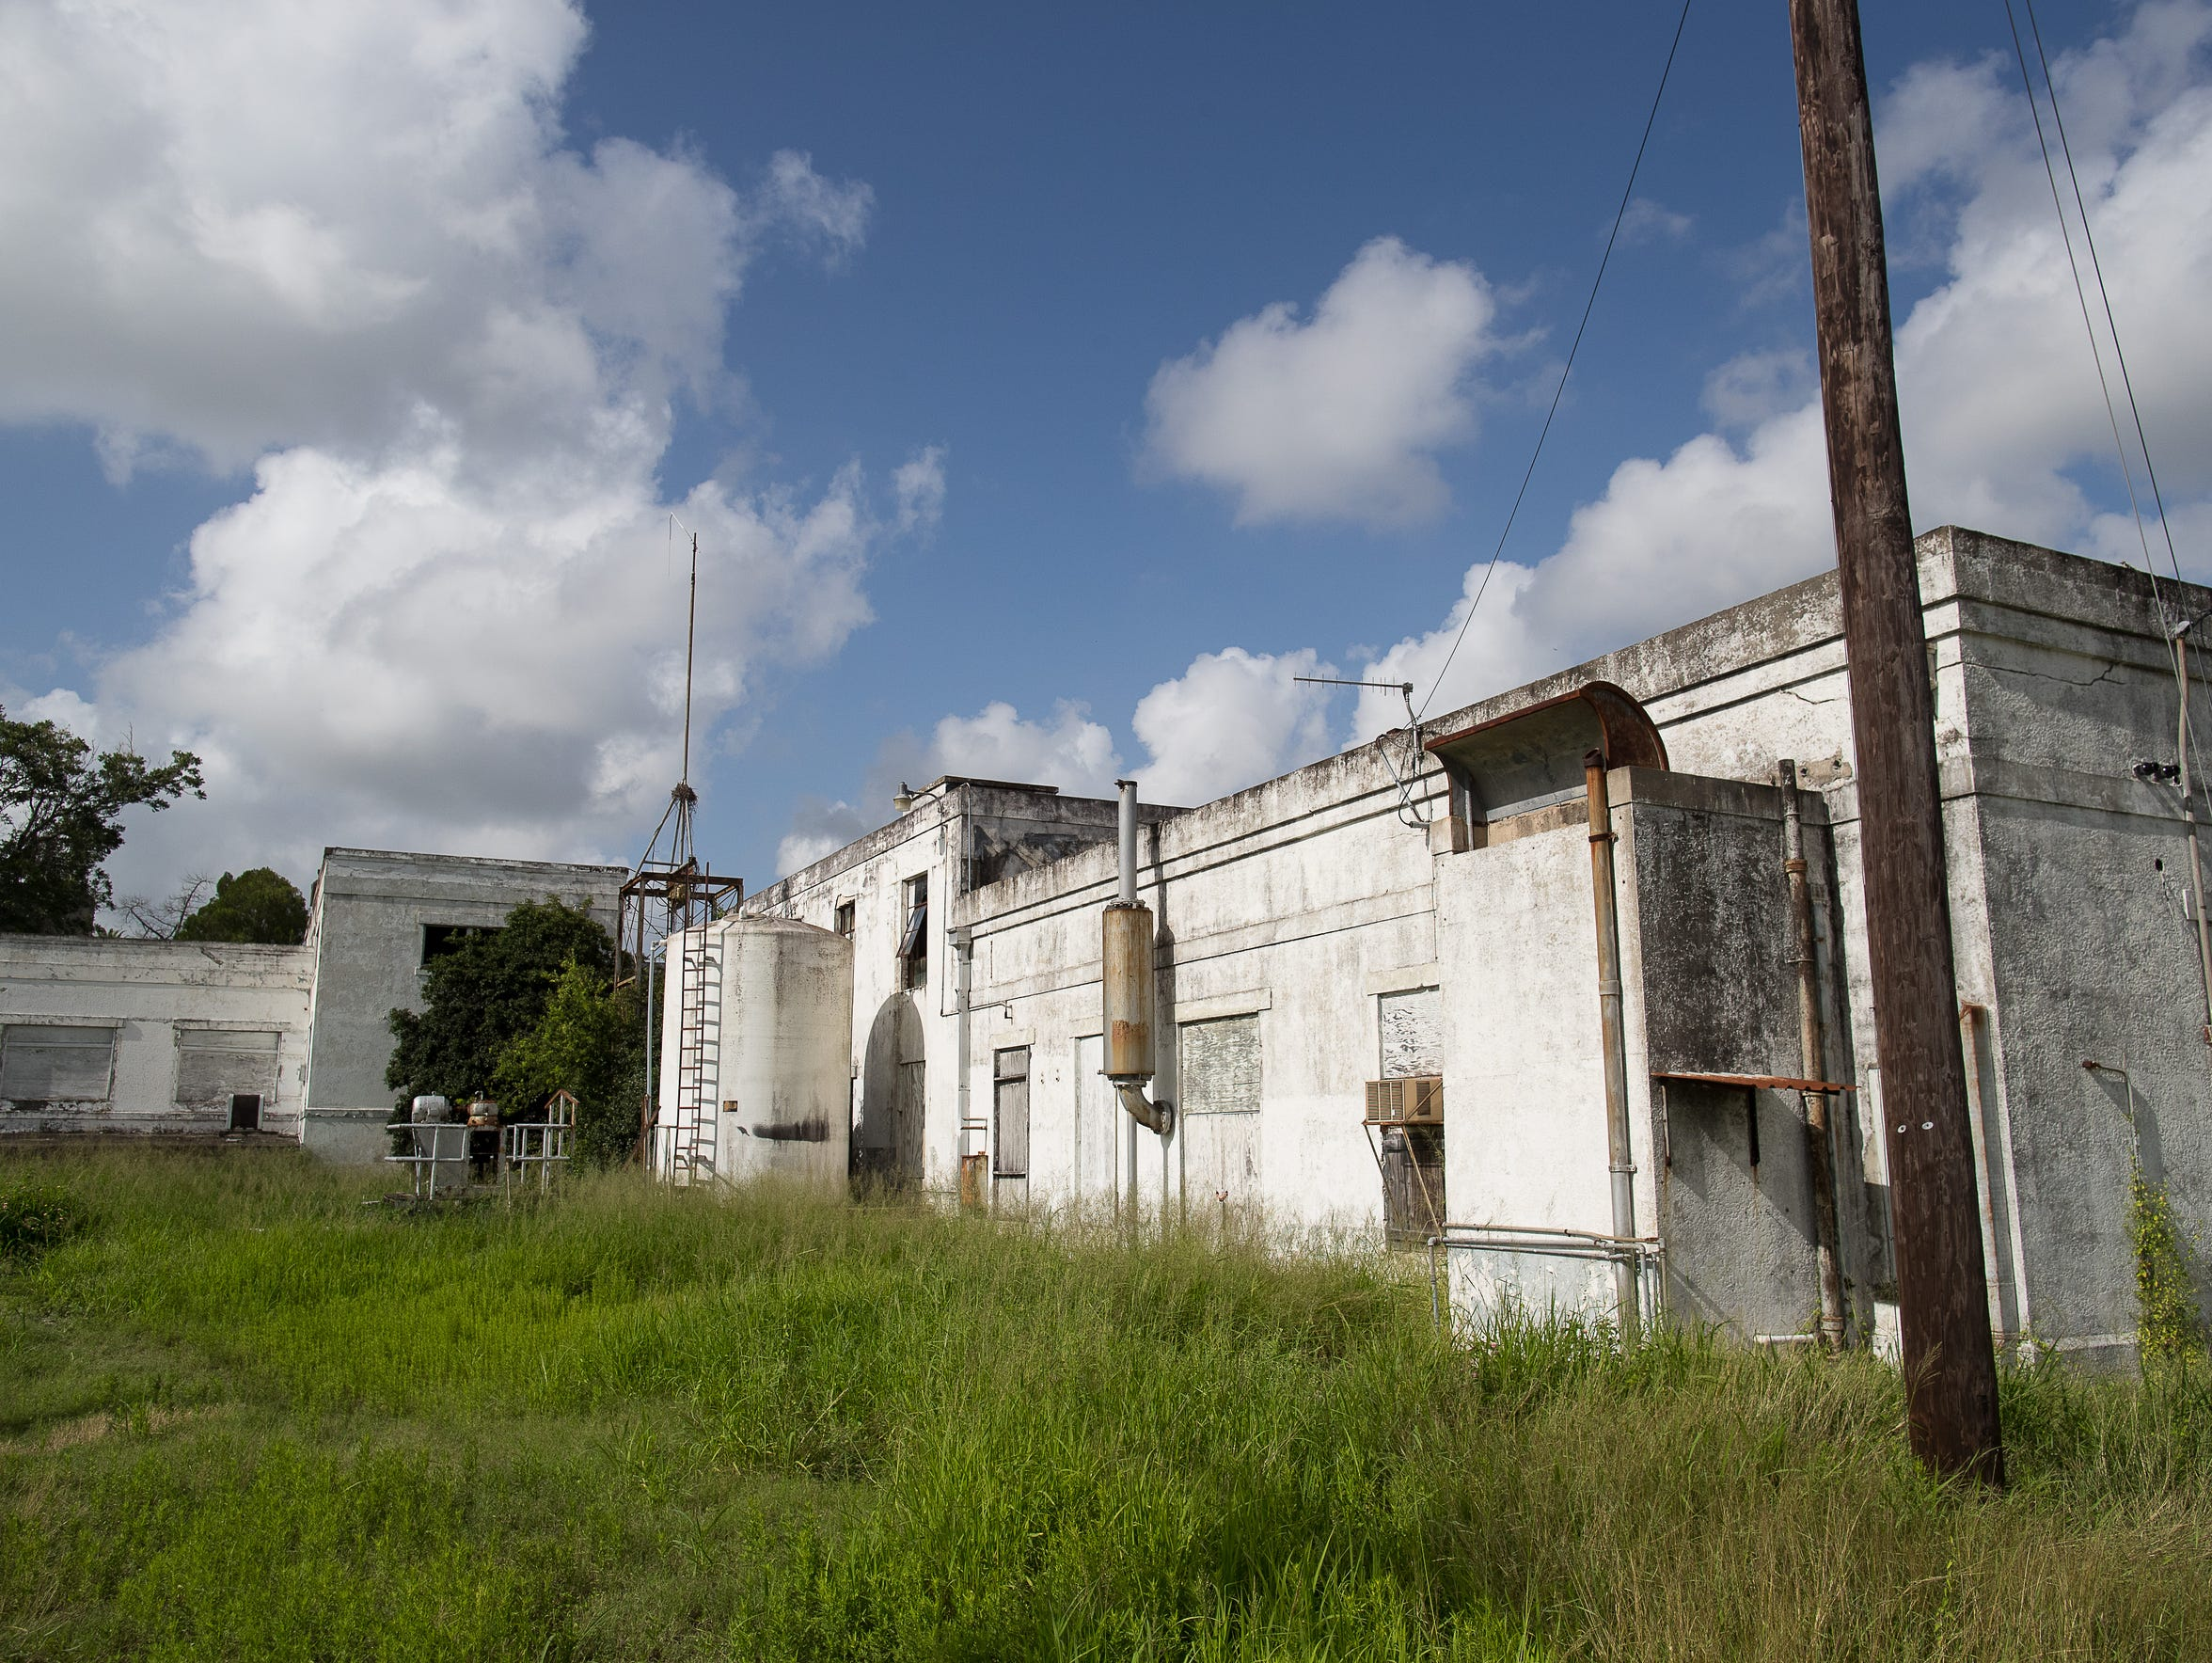 The City of Corpus Christi's Cunningham Water Plant